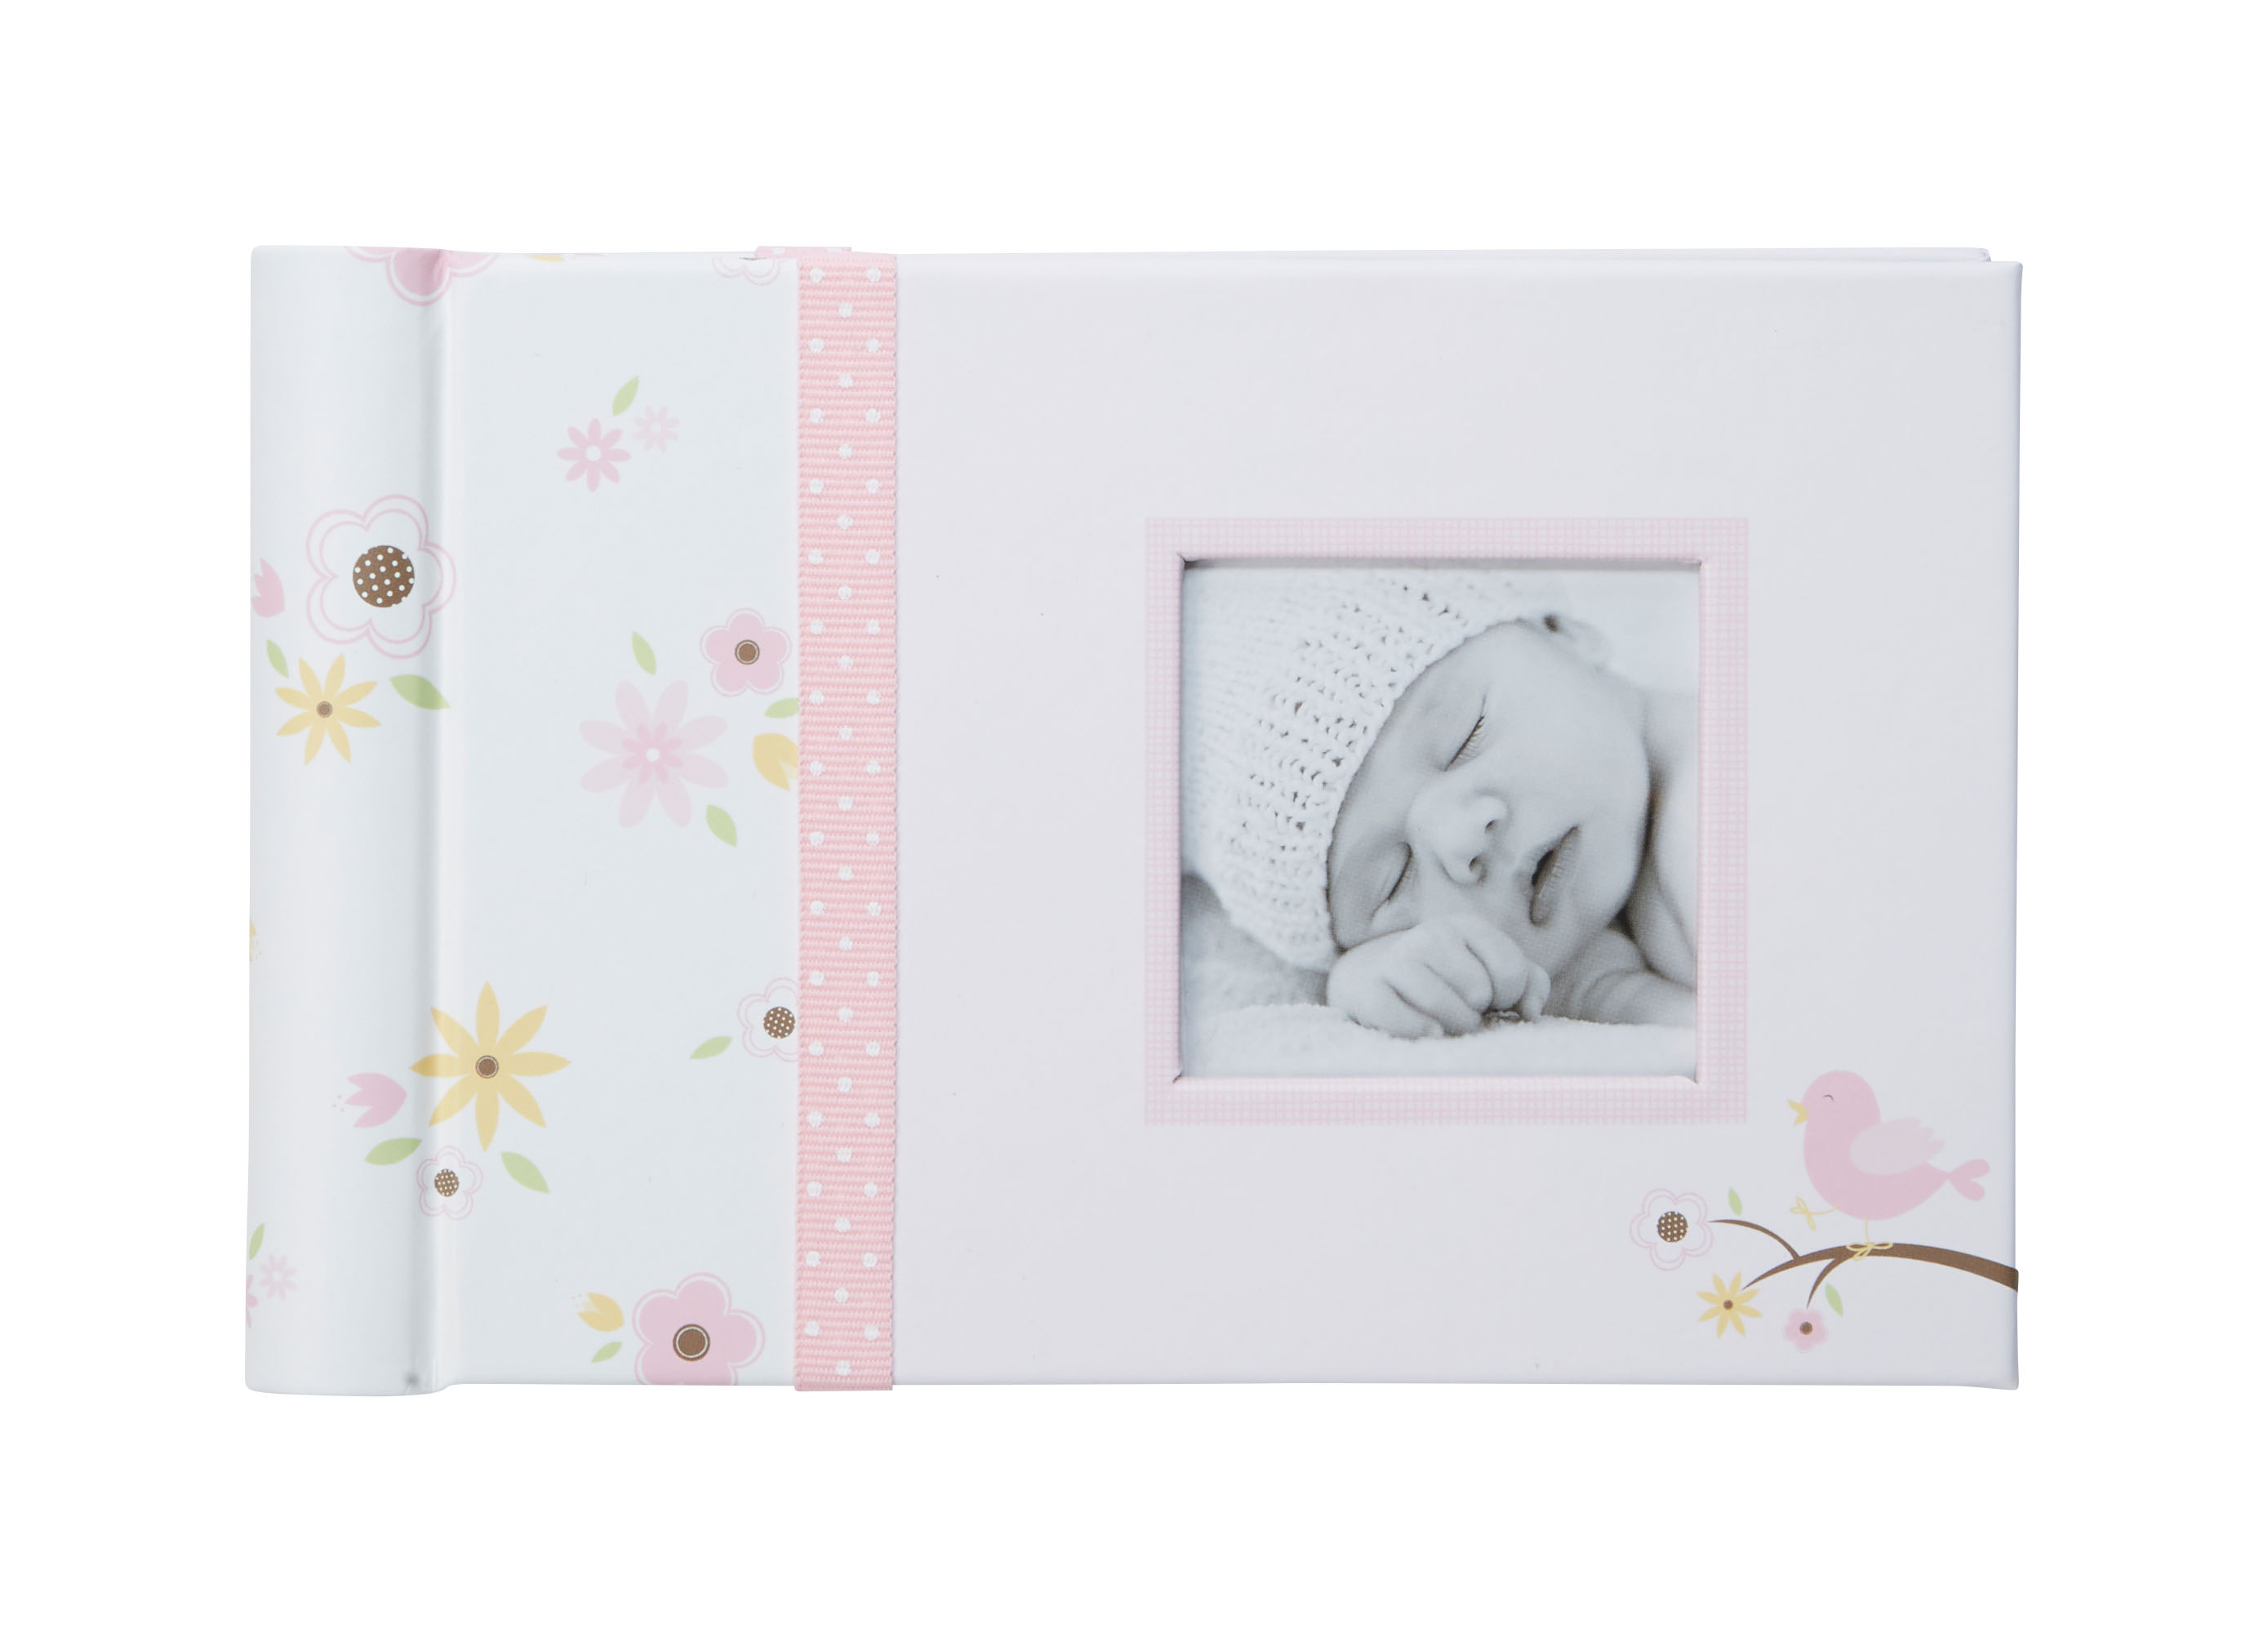 Lil Peach Bird Bragbook Pink or Addition to Baby Registry A Perfect Gift for Expecting Parents